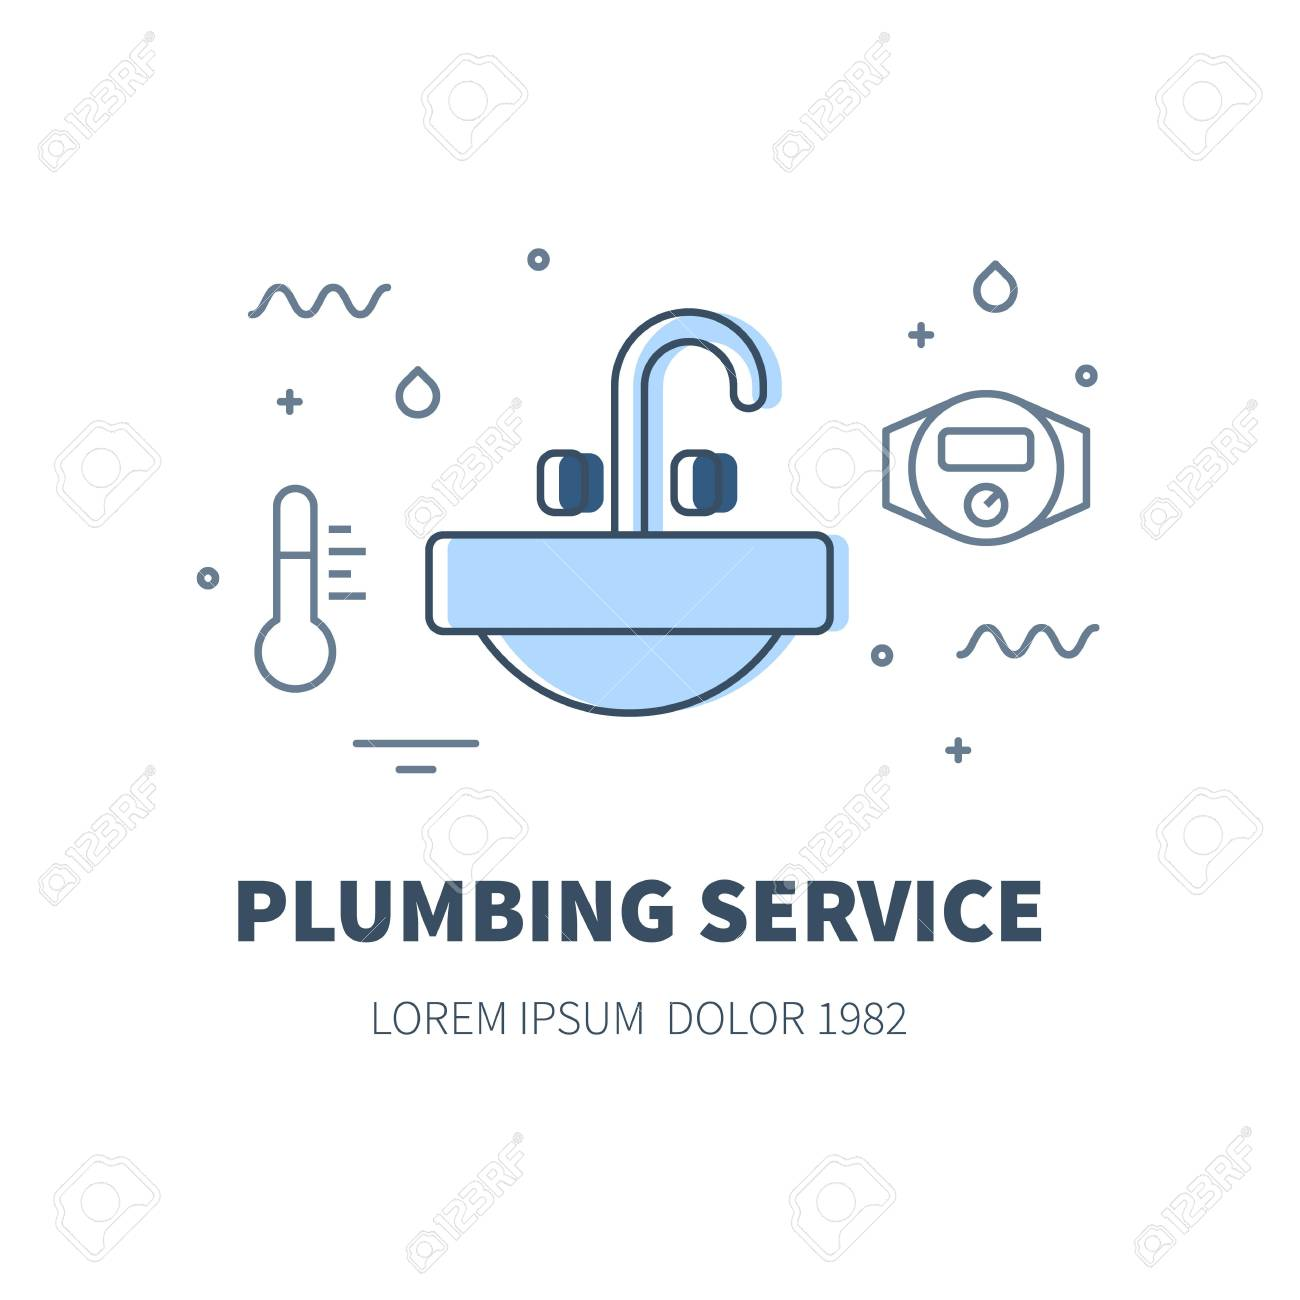 Plumbing Service Concept Design Illustration And Logo Of Sink ...